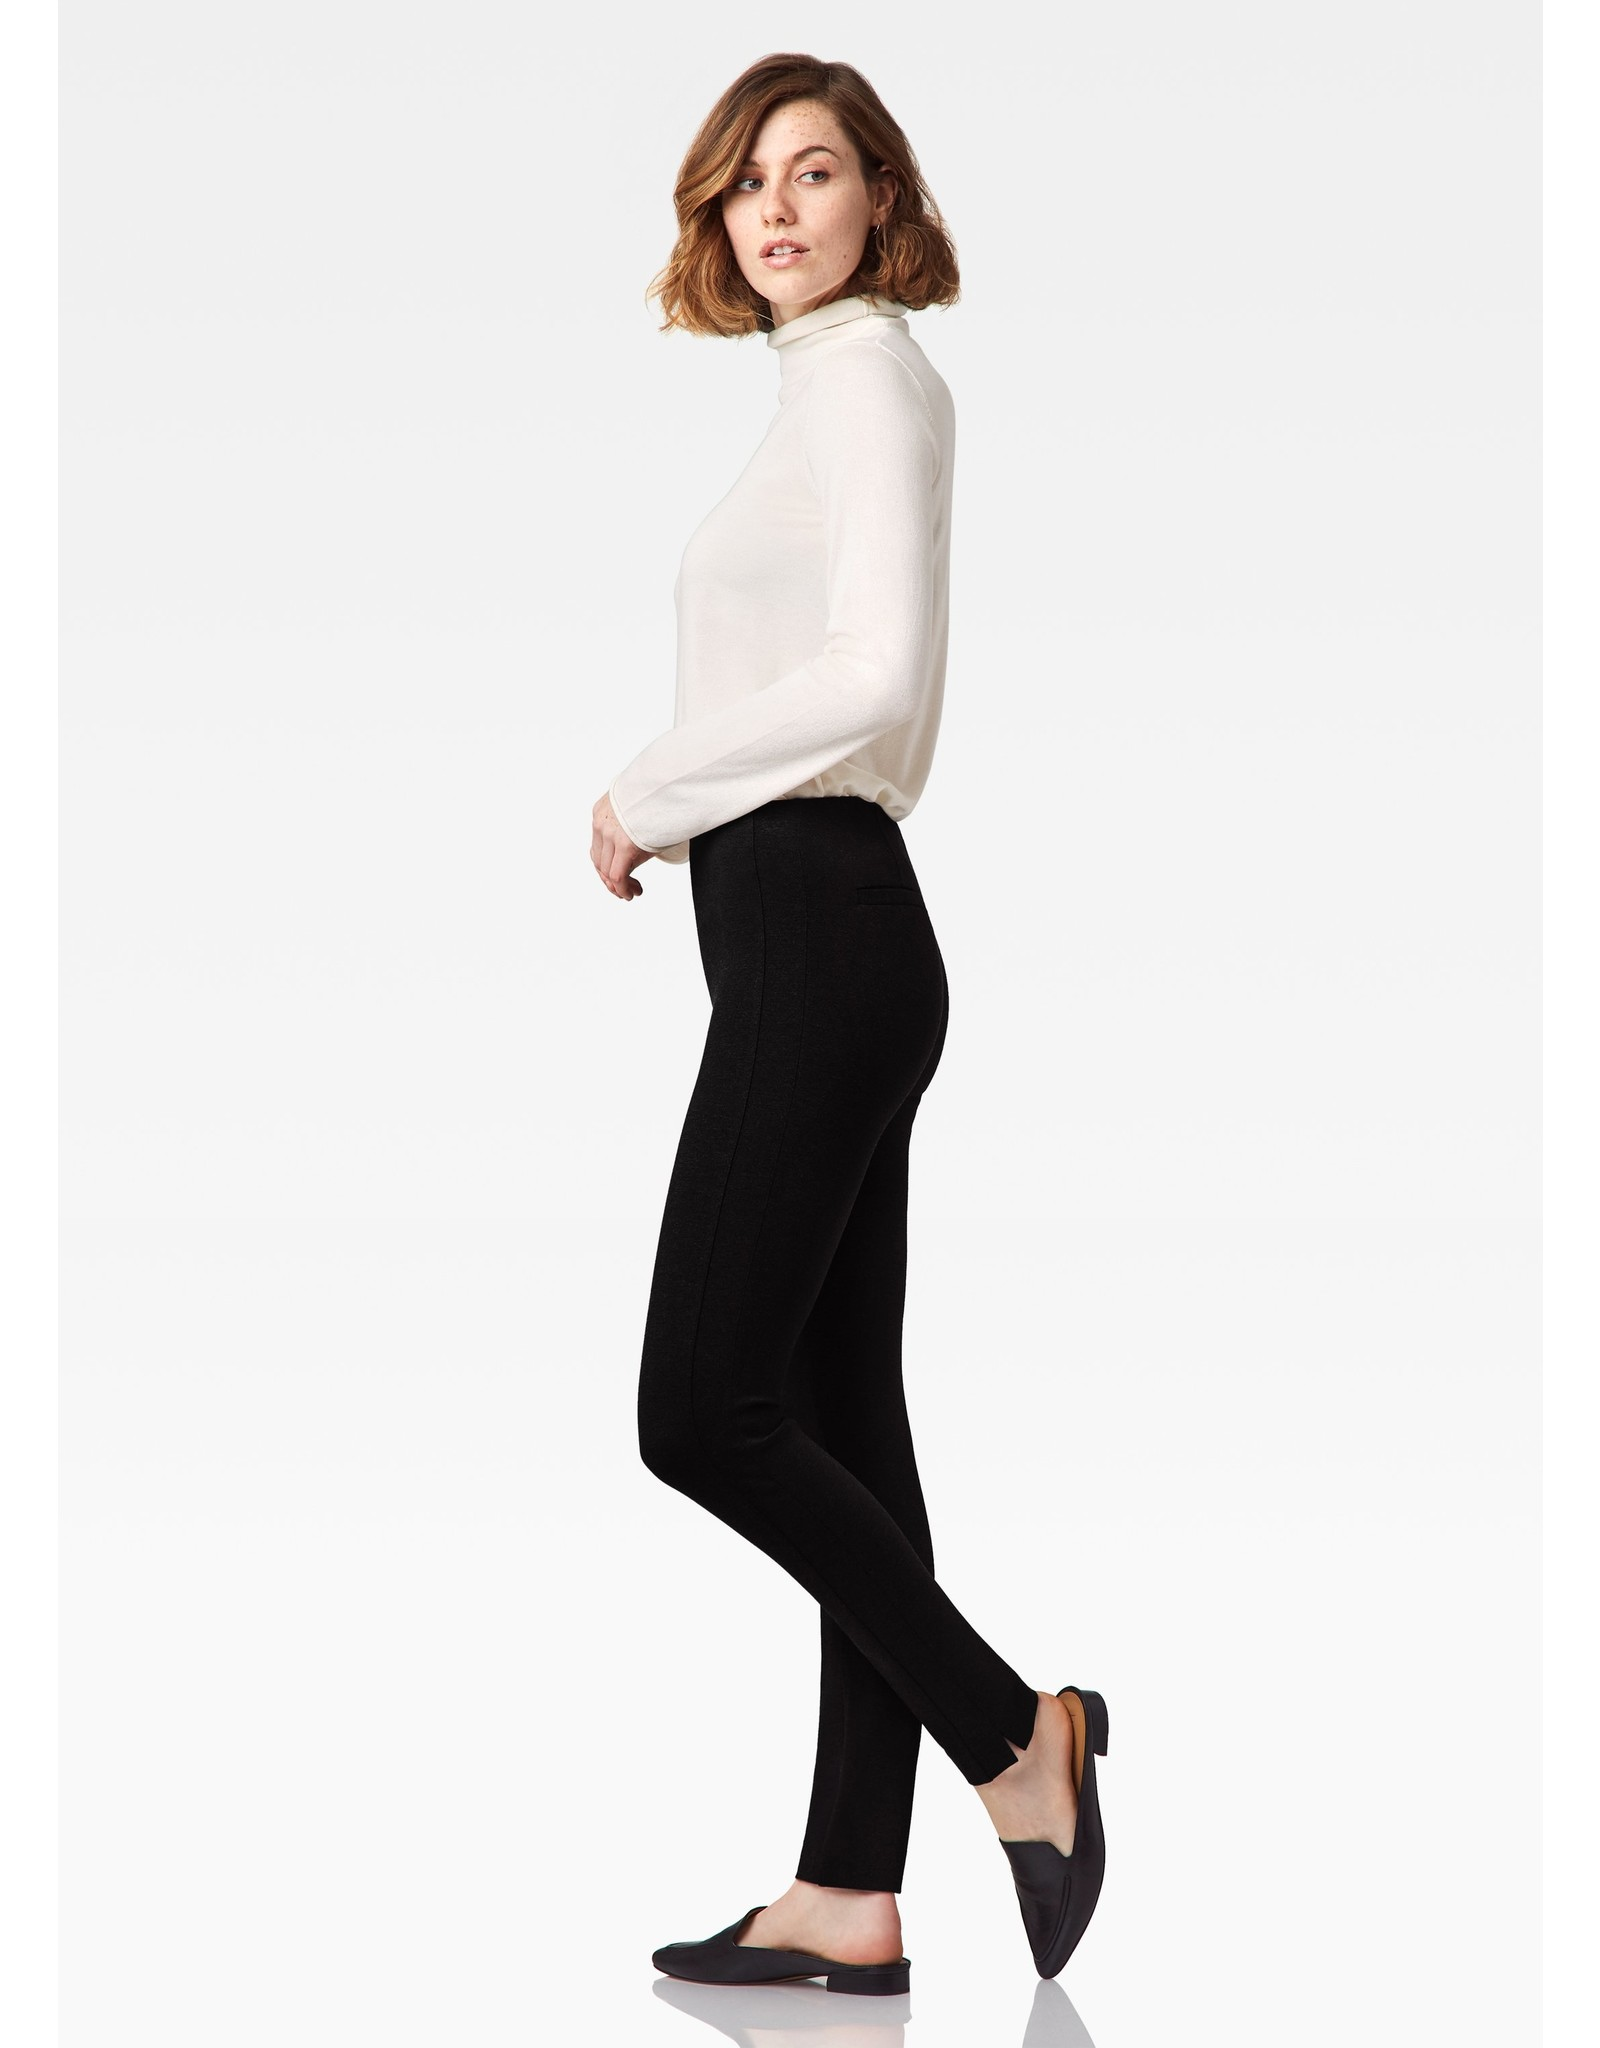 Castro Slim Pull On Pant w/ Side Inset